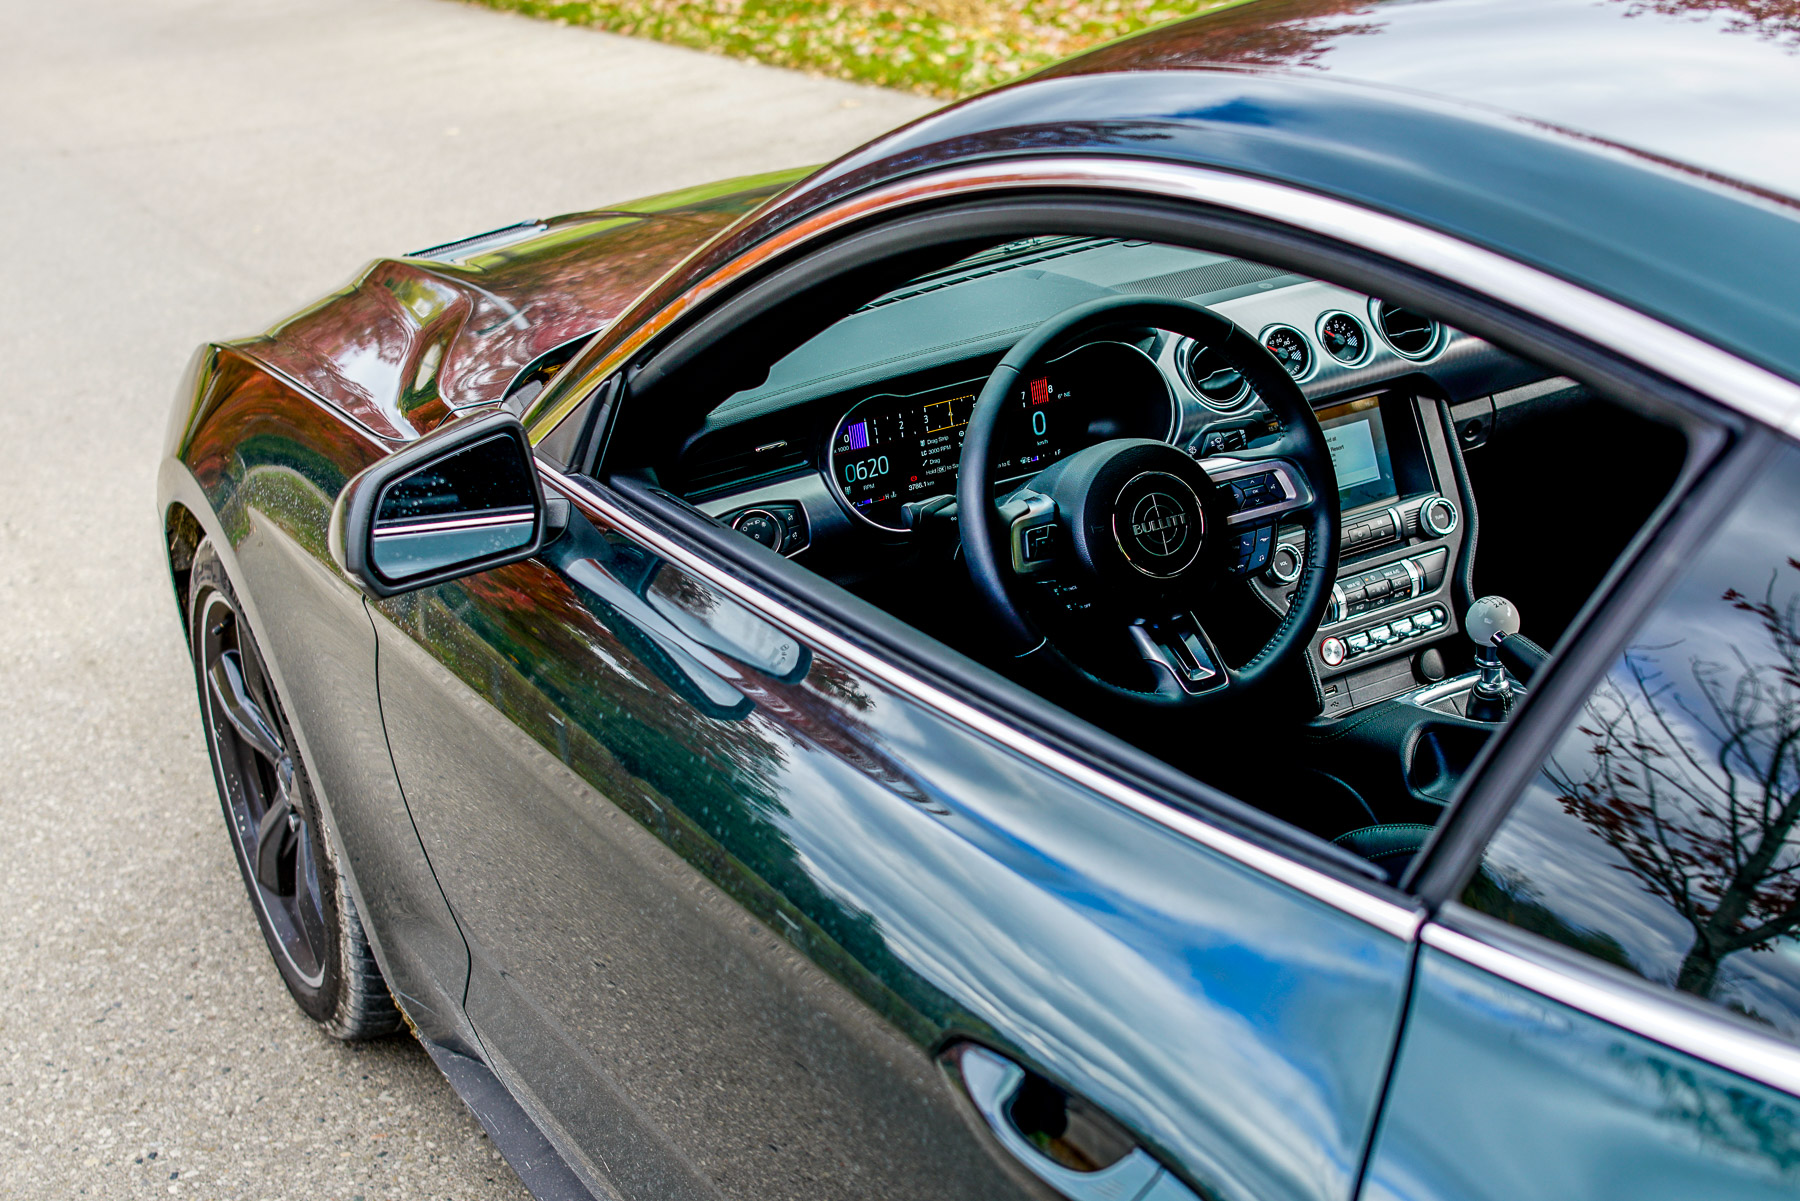 The Art of Driving: Experiencing The 2019 Ford Bullitt Mustang